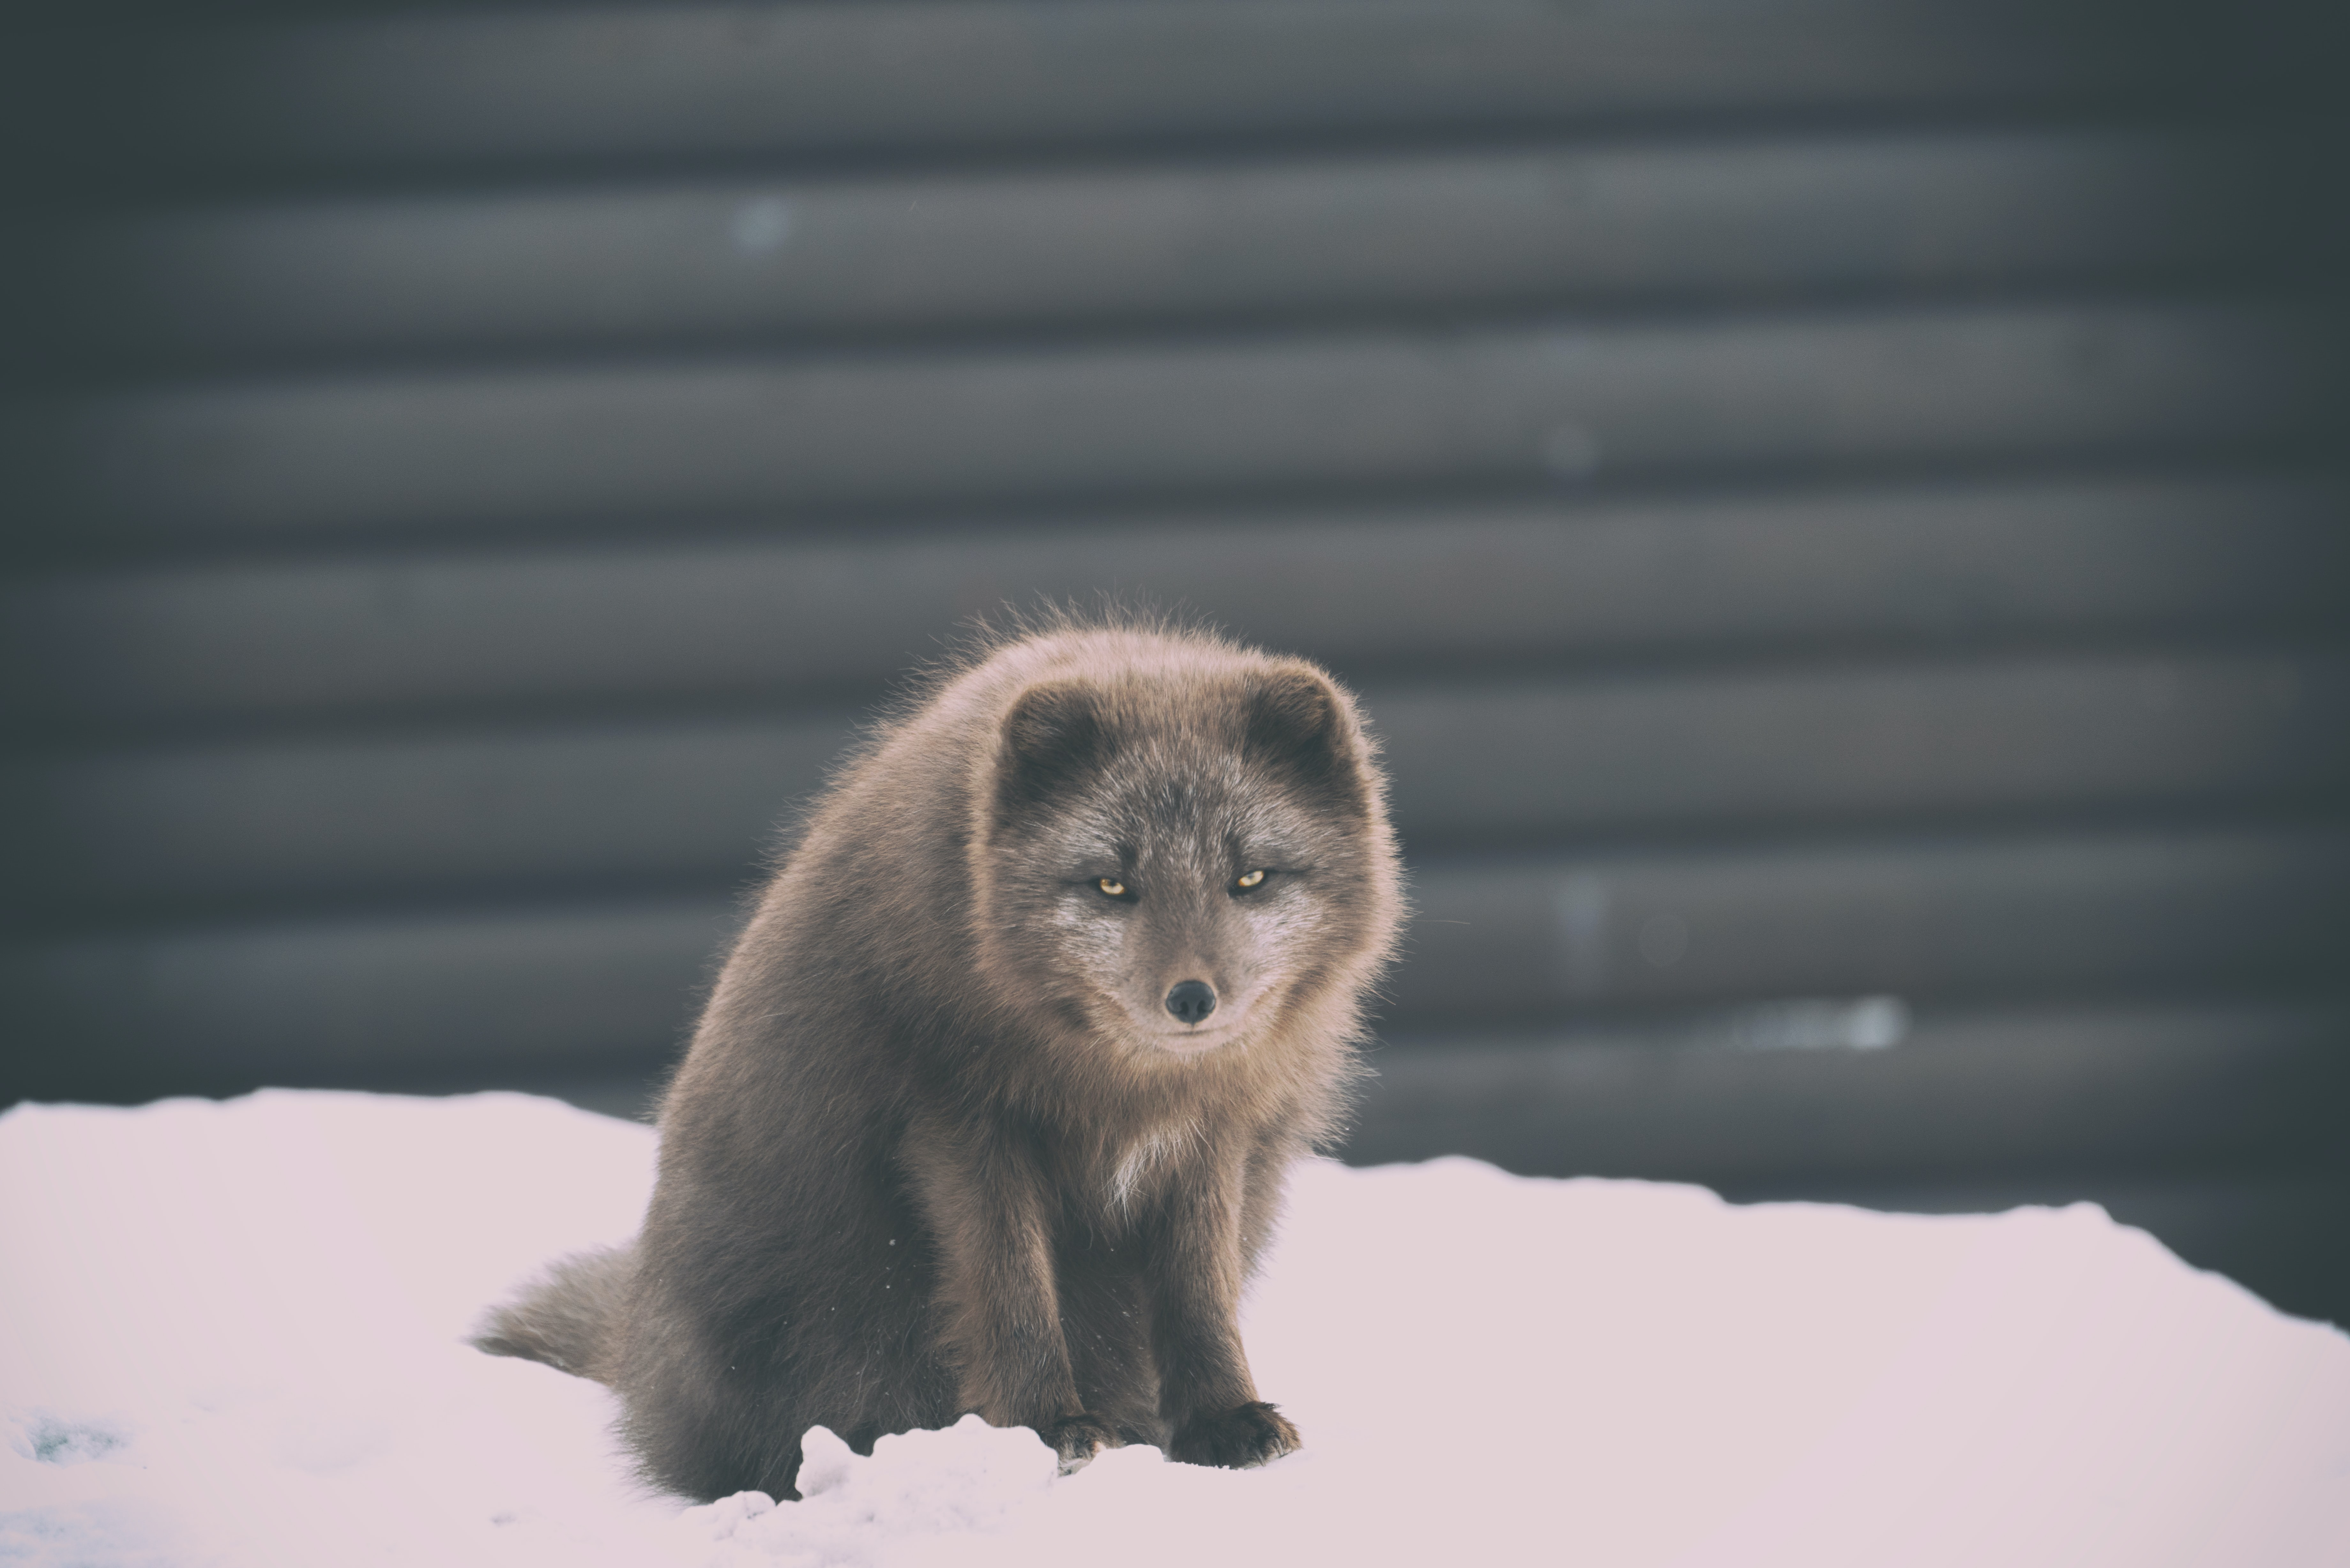 brown animal on the snow during daytime photography